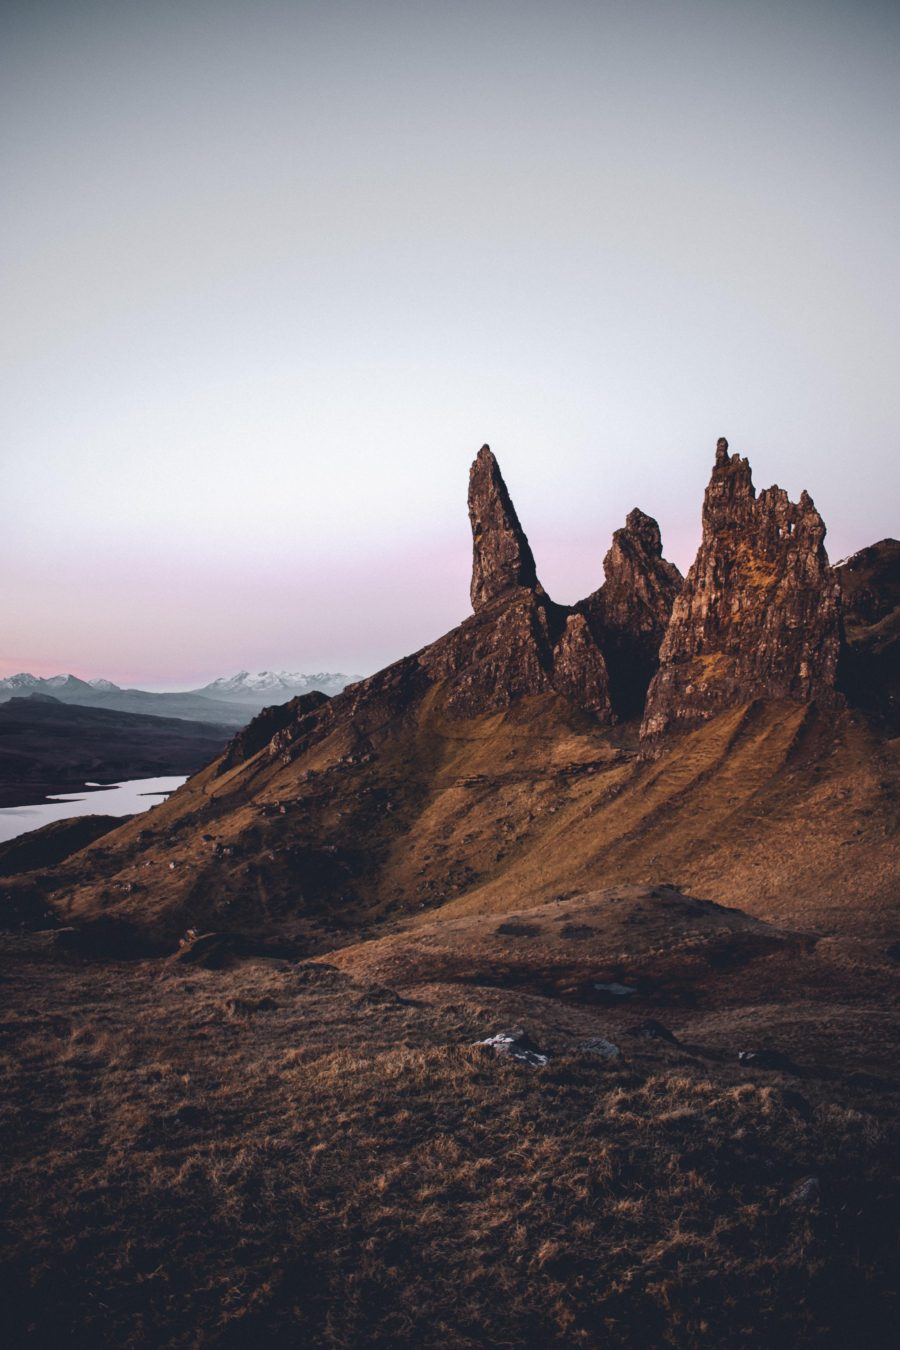 Storr sunrise